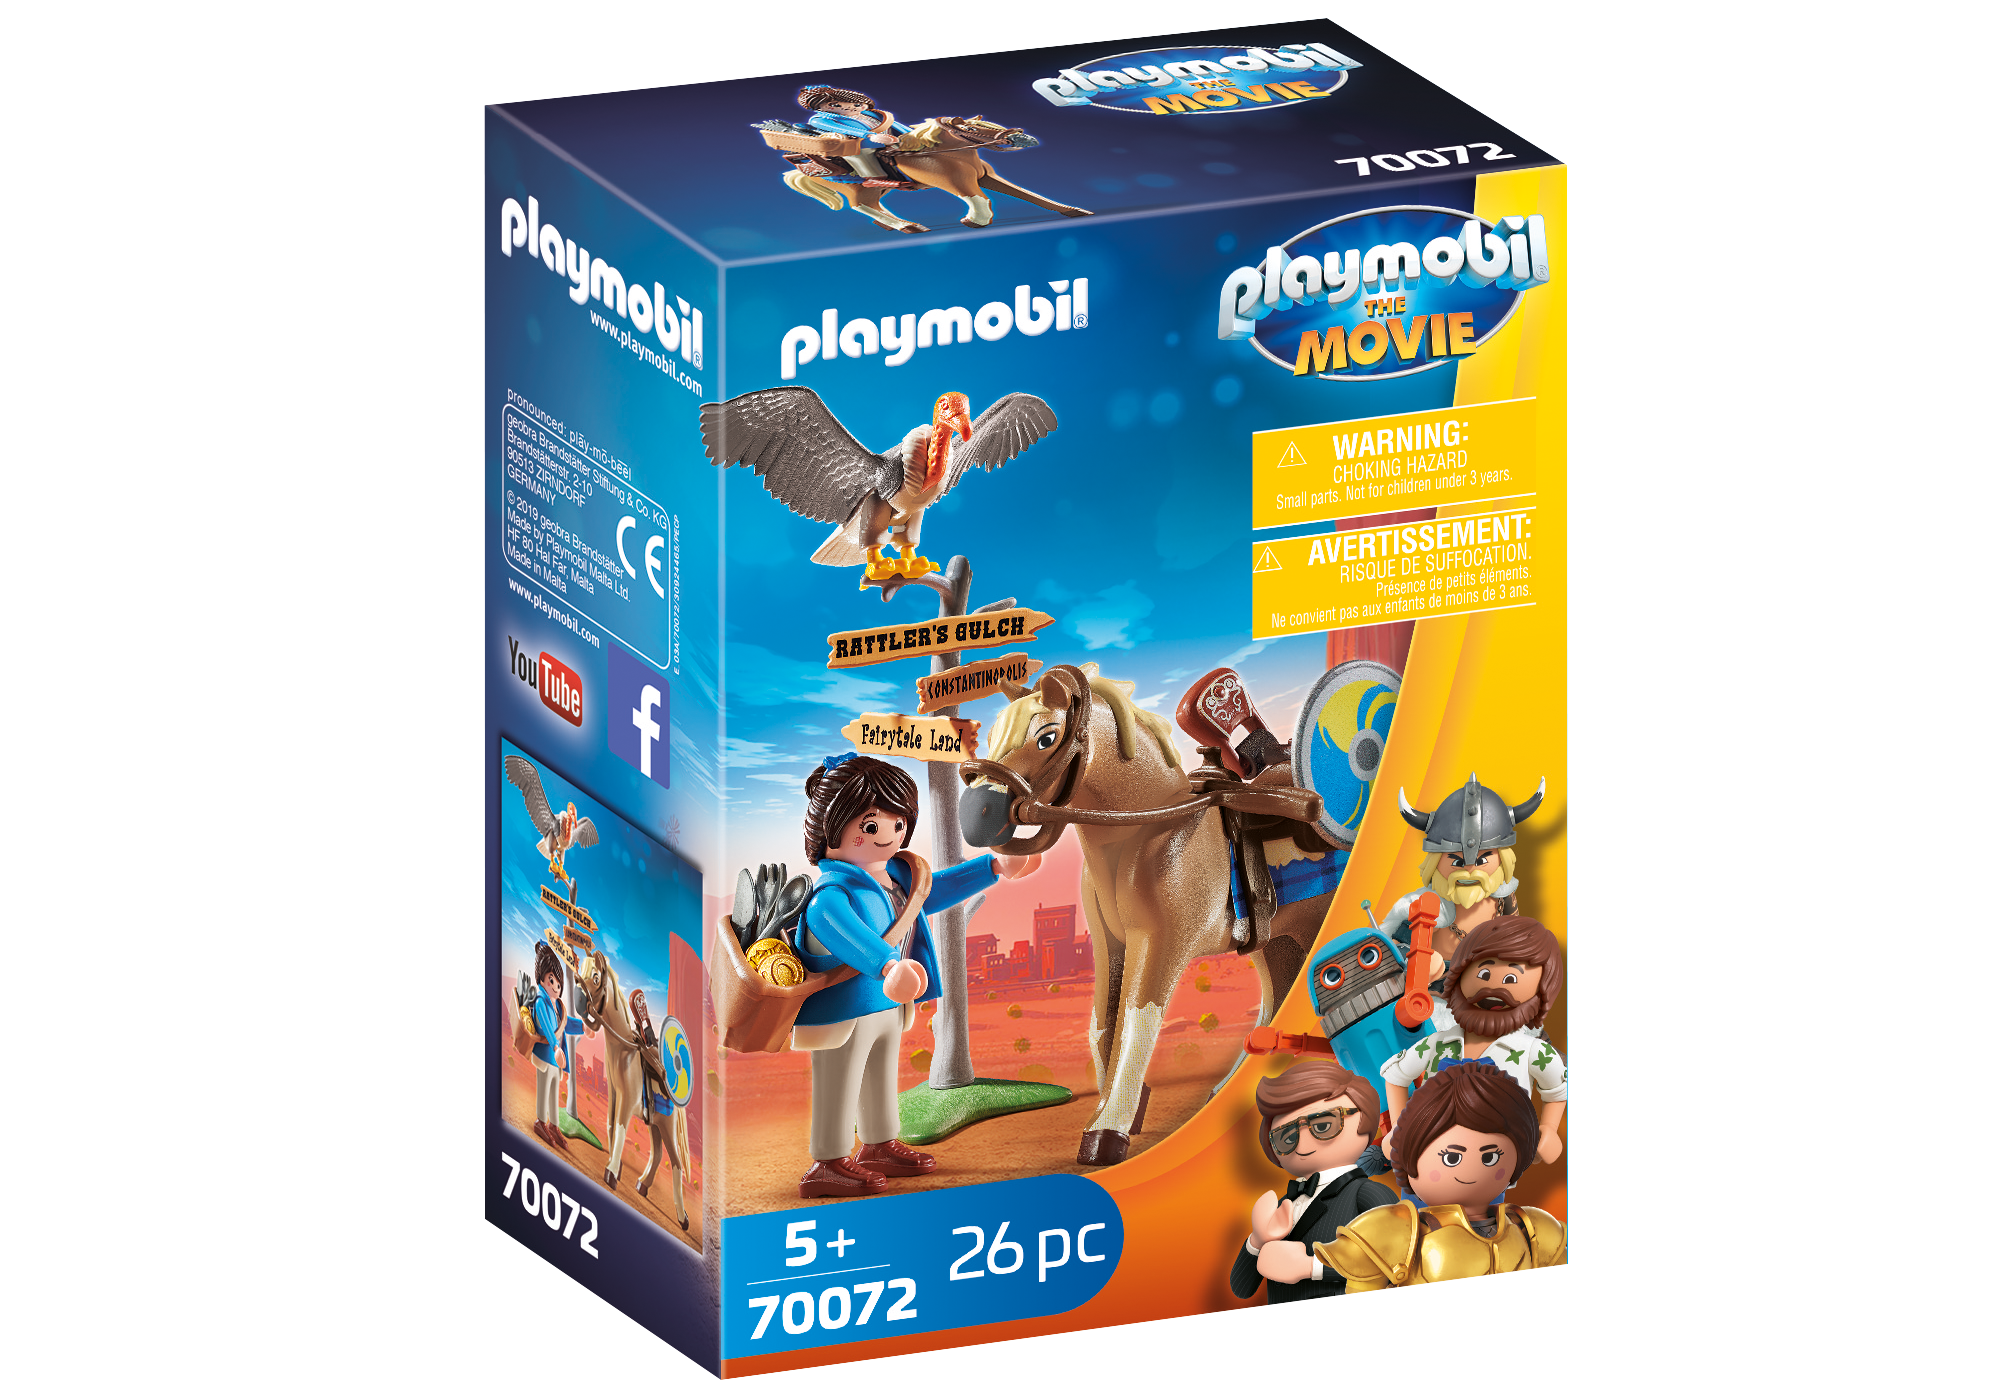 http://media.playmobil.com/i/playmobil/70072_product_box_front/PLAYMOBIL:THE MOVIE Marla mit Pferd